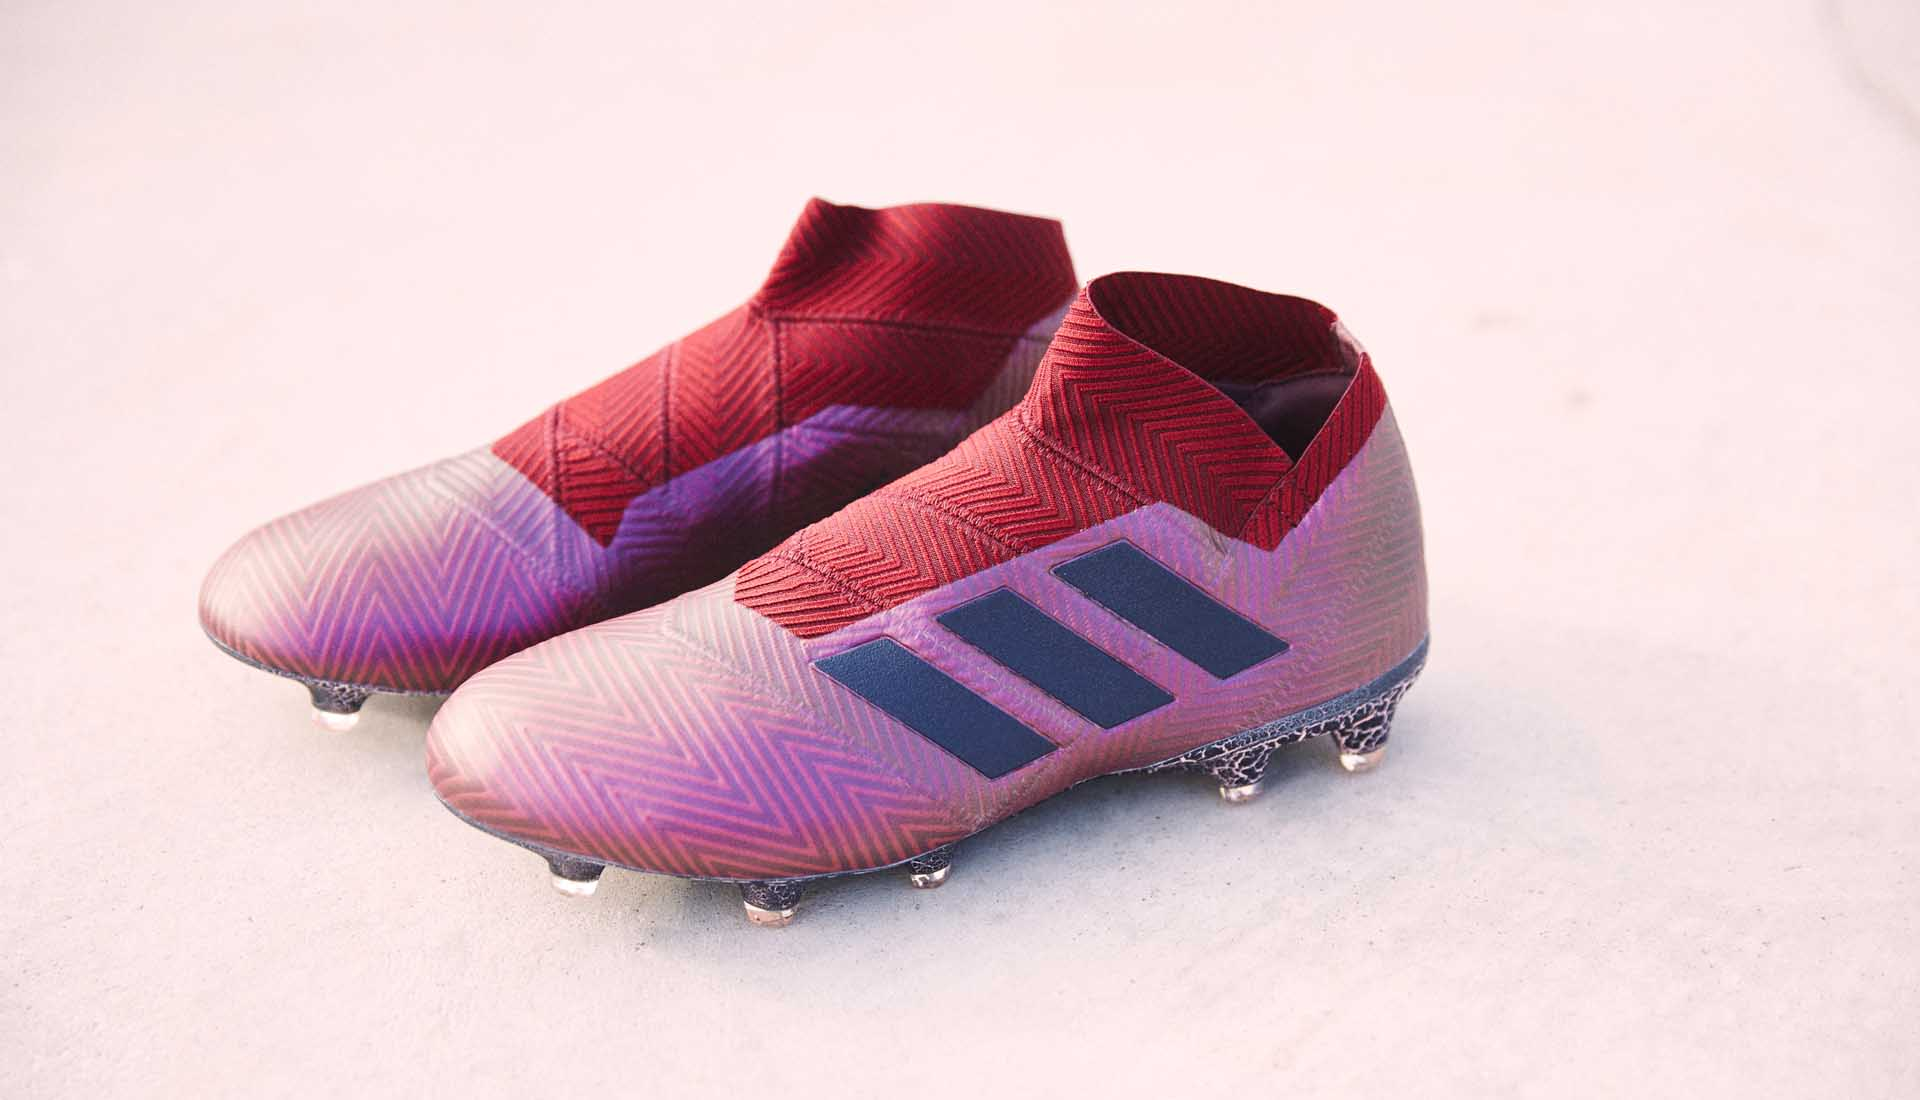 54cc5dbe9 adidas Launch The Nemeziz 18+